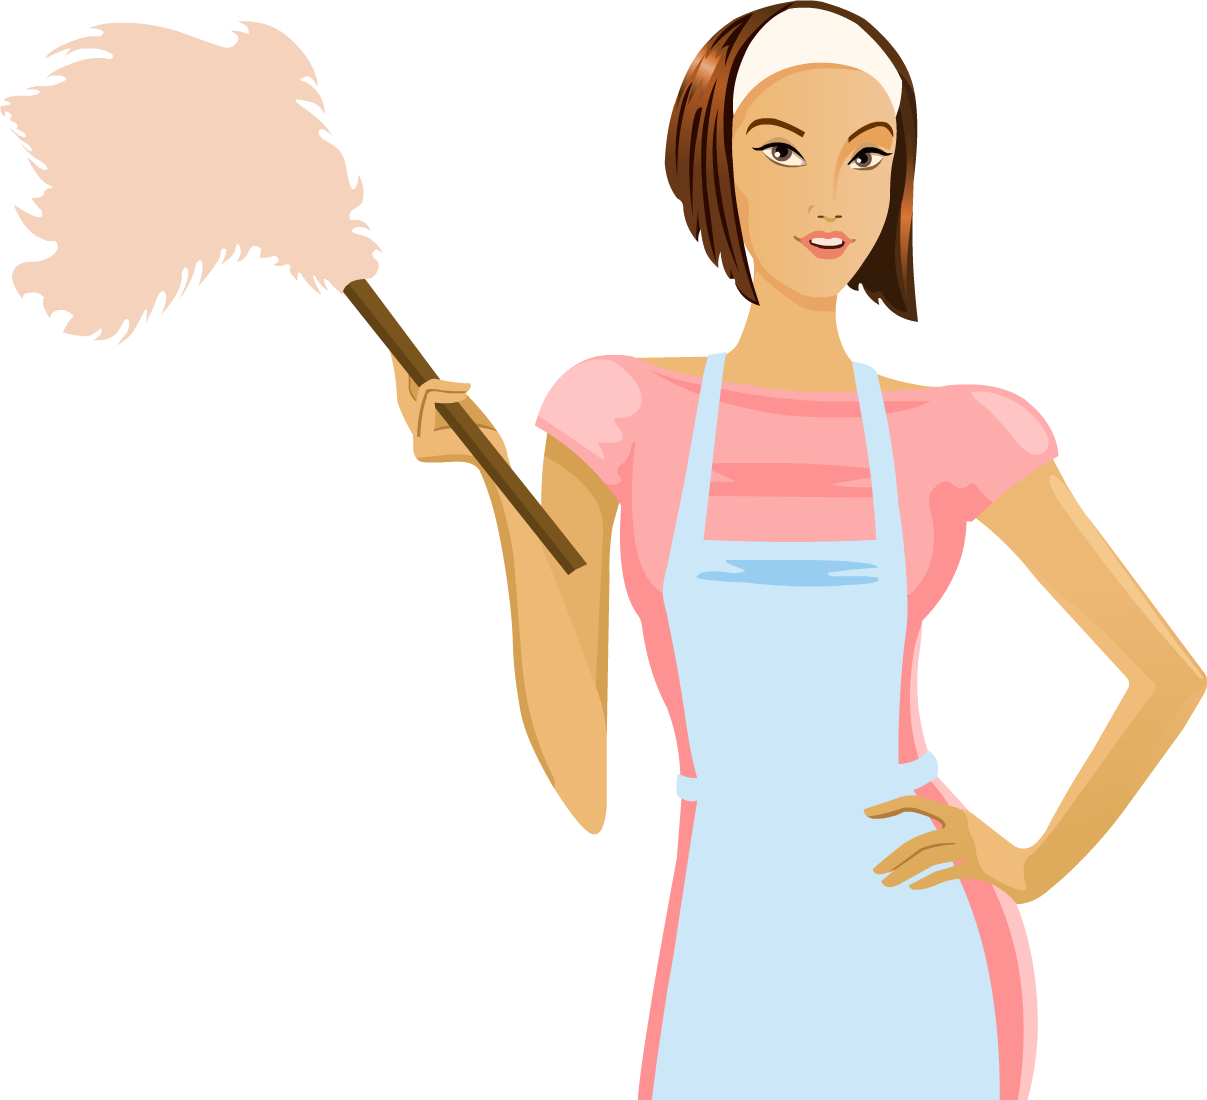 Maid clipart maid service. Luciana cleaning services md